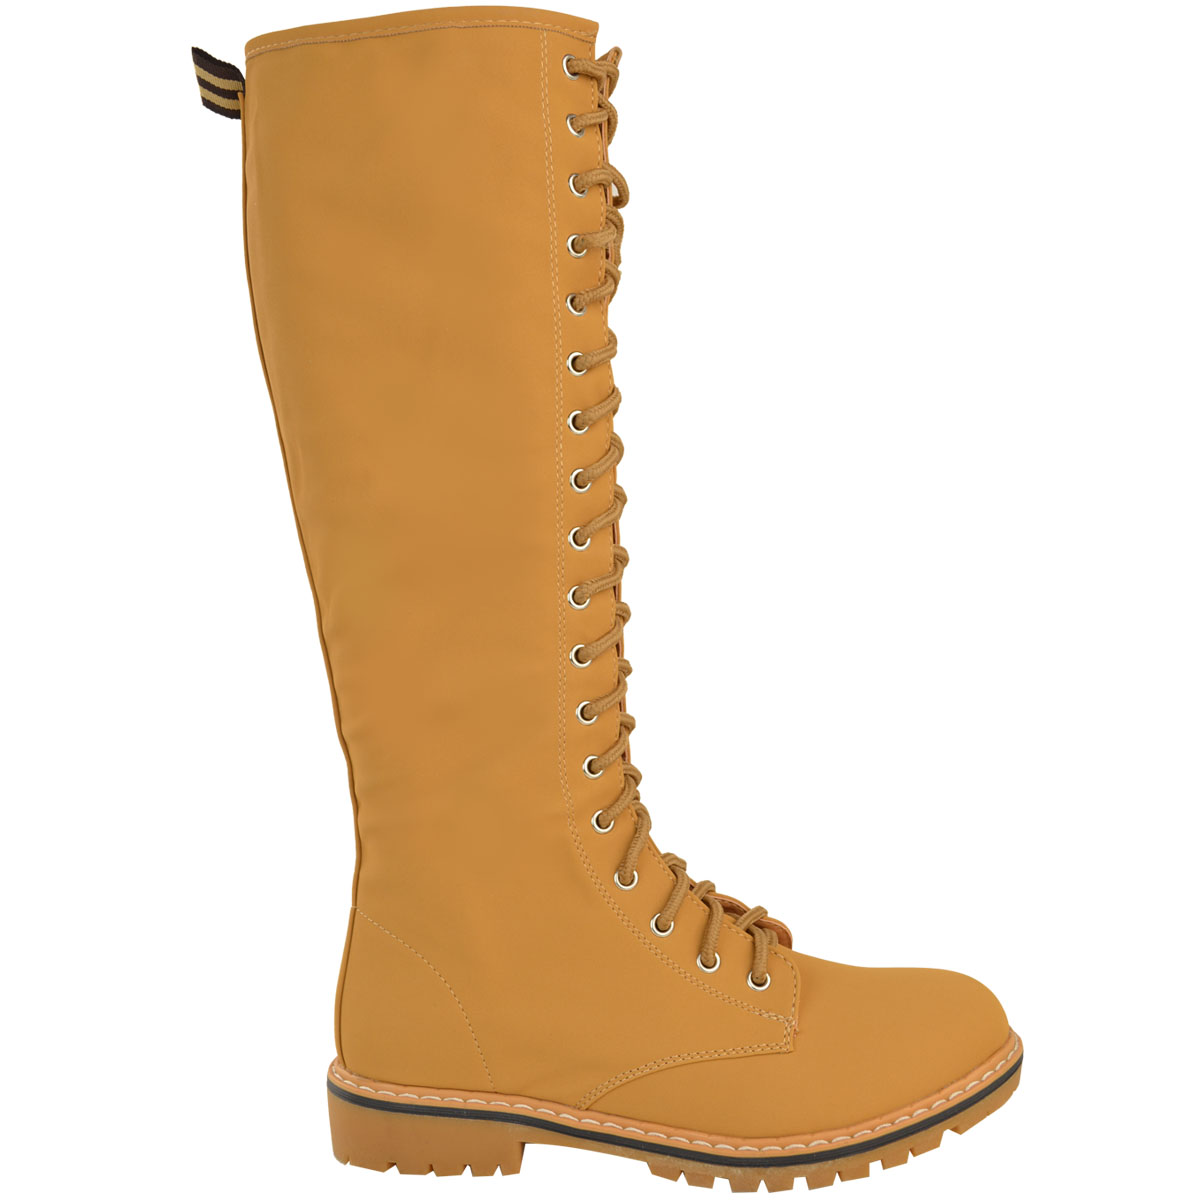 0c6808bdd Details about Womens Ladies Knee High Army Combat Winter Boots Timbs Lace  Up Winter Shoes Size